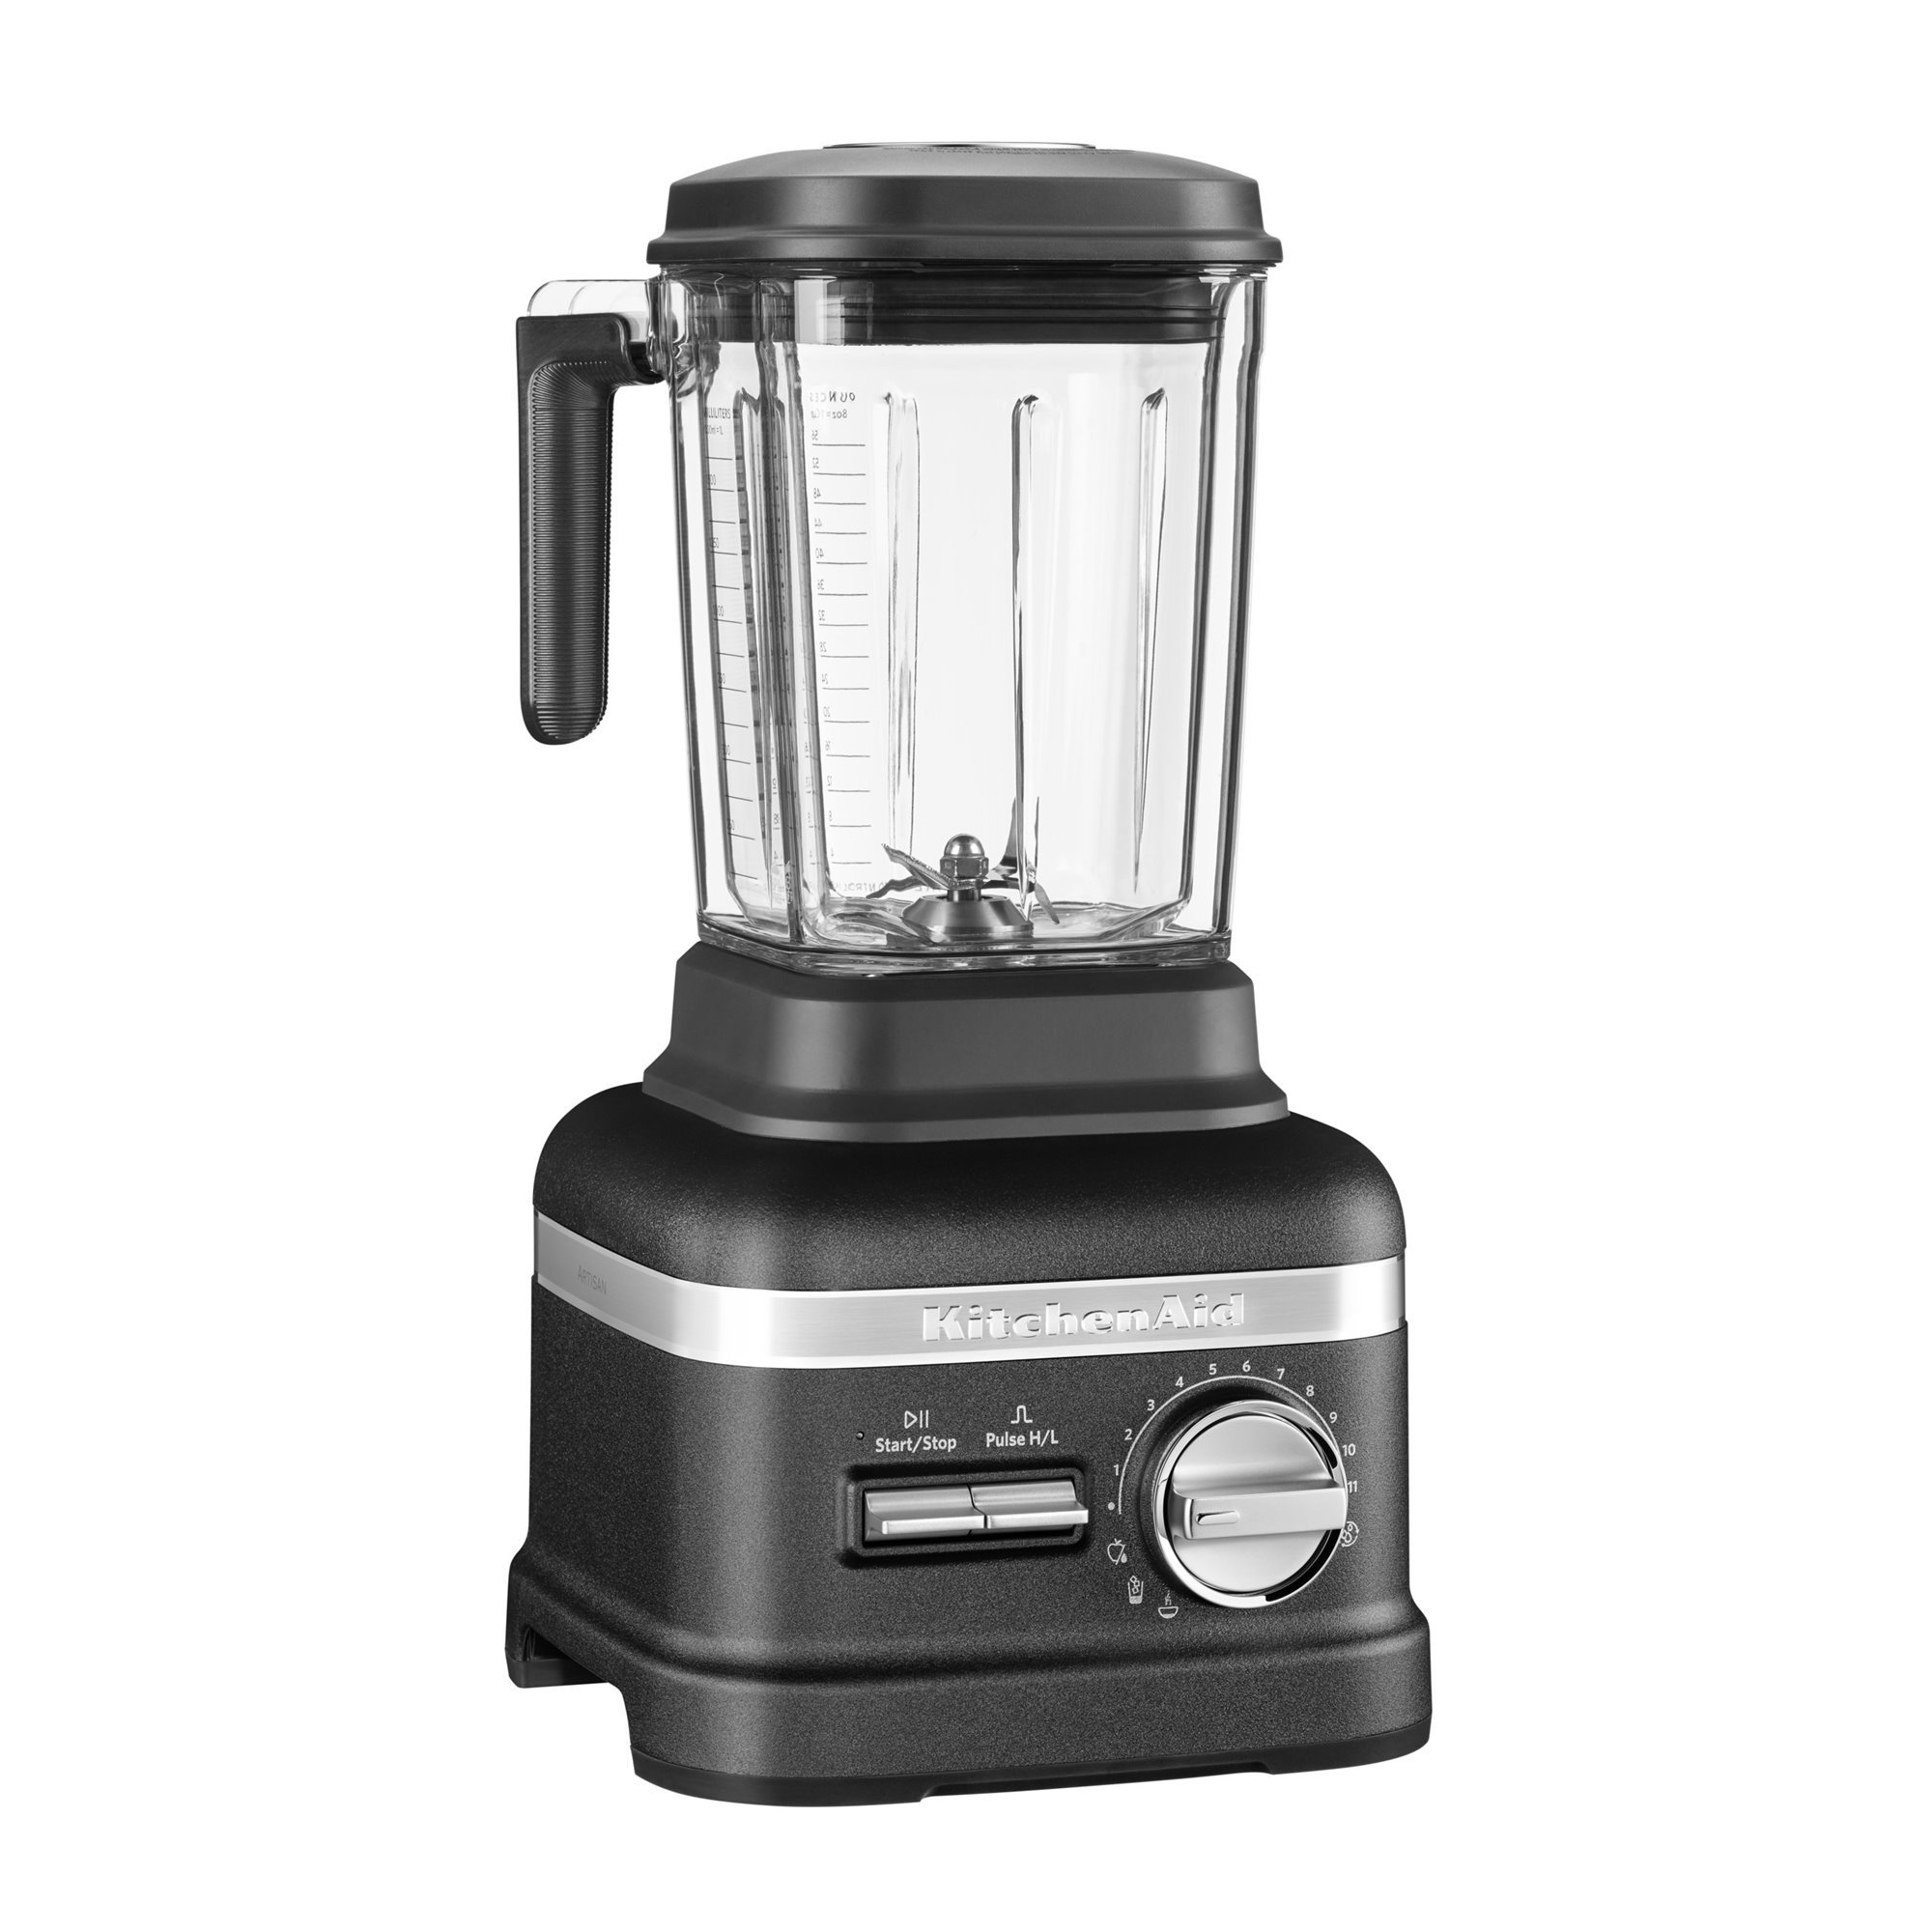 Blender Artisan Power Plus 5KSB8270E, 12 trepte de viteza, 2,6 L,1800W, KitchenAid imagine